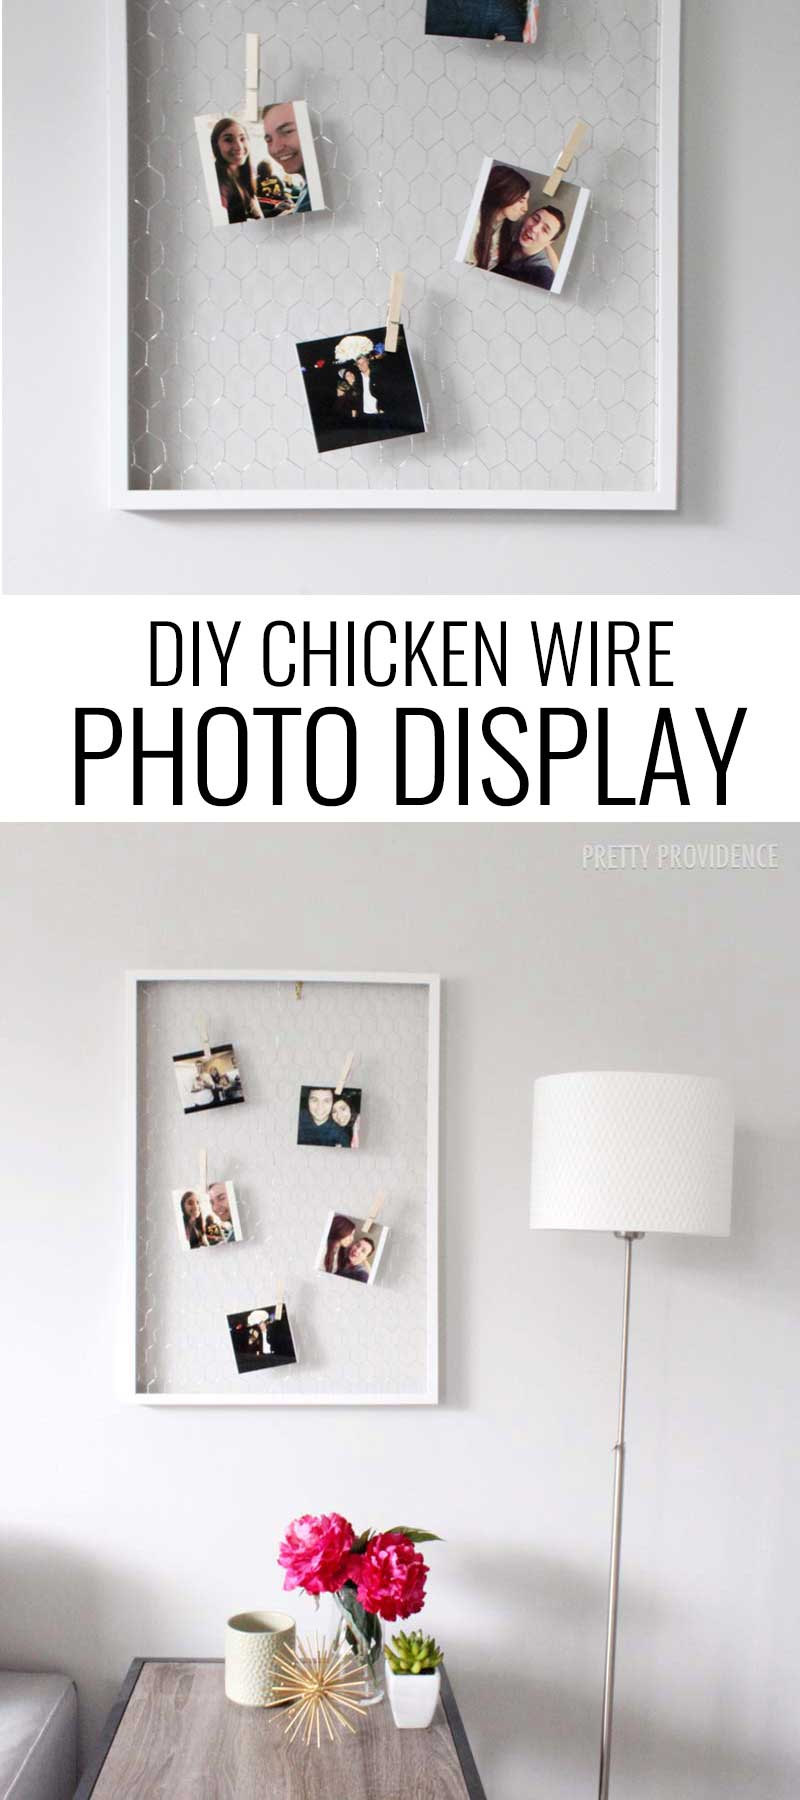 Love this DIY chicken wire photo display!! So fun for those instagrams you print!